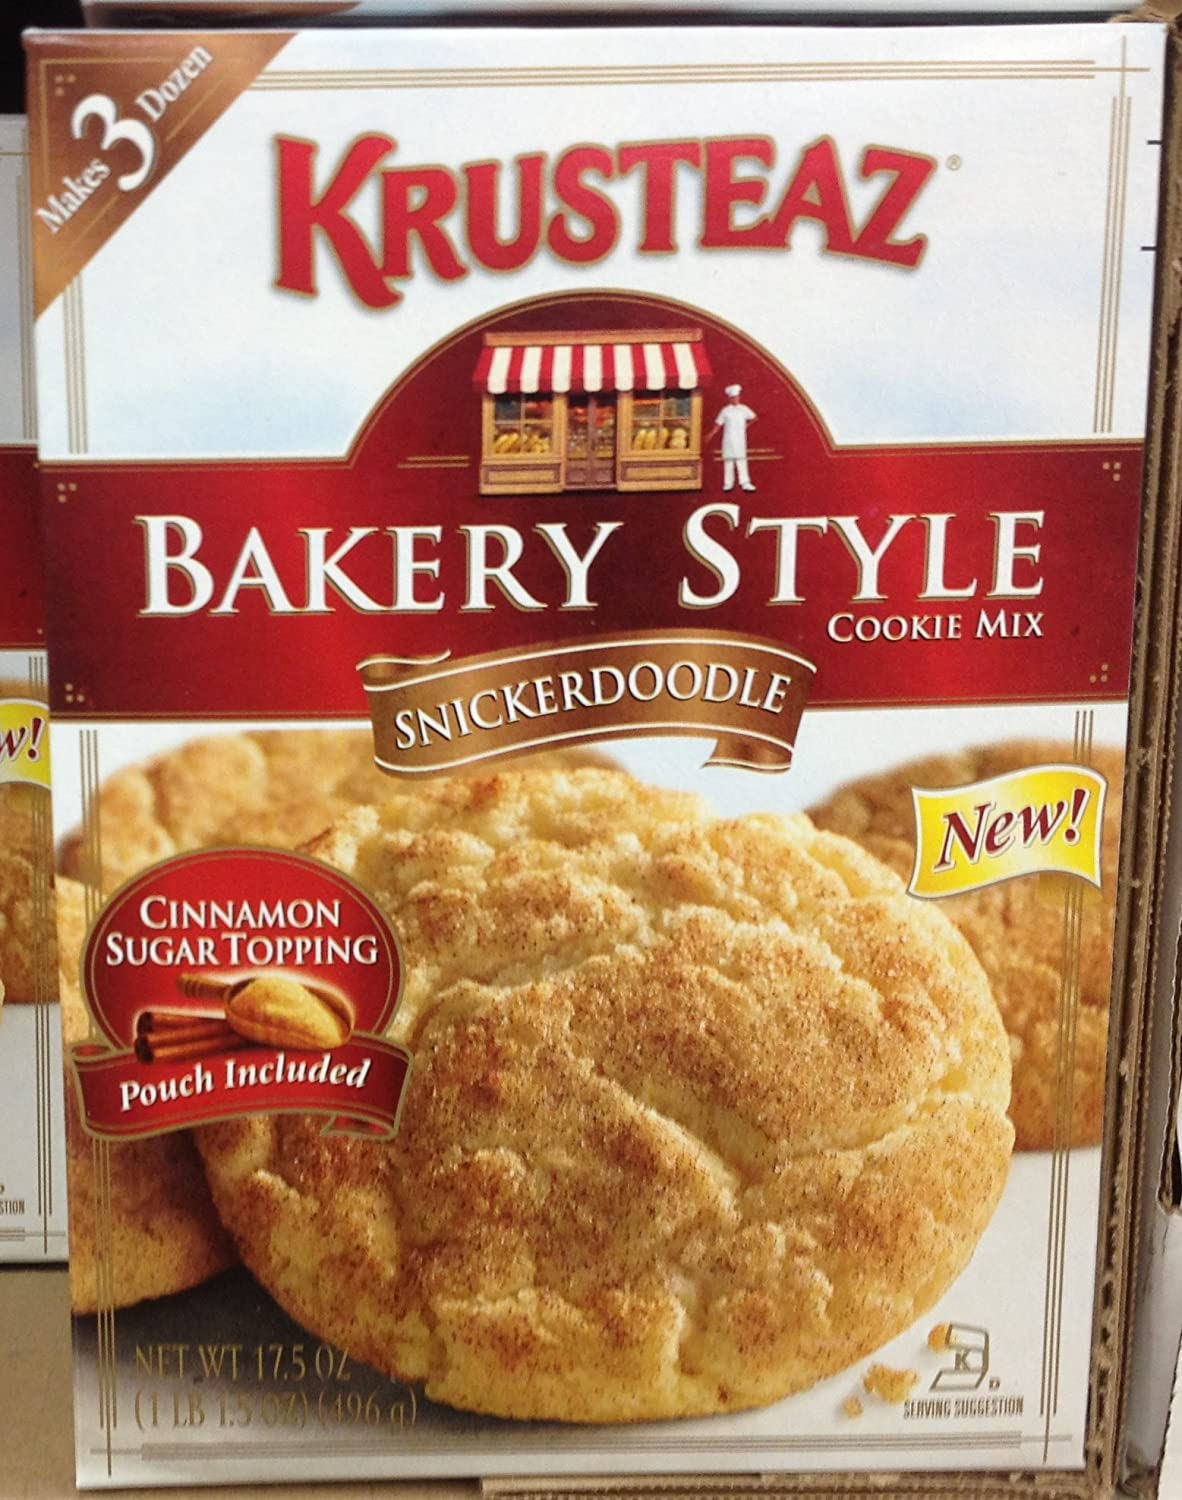 Krusteaz Bakery Style SNICKERDOODLE Same day shipping Recommended Cookie Boxes 6 17.5oz Mix